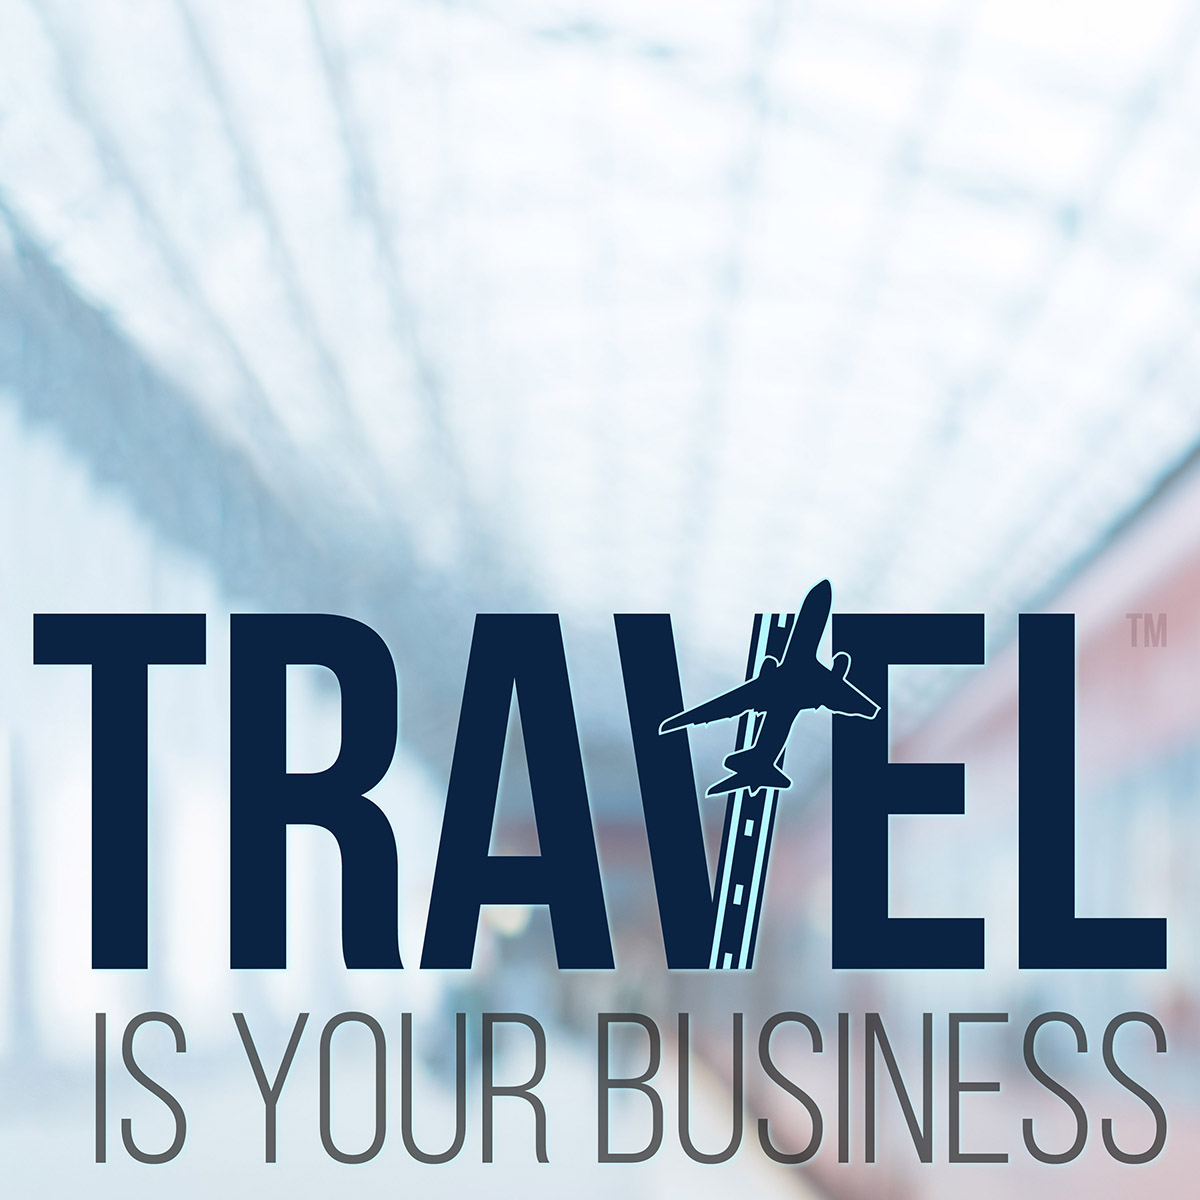 Travel Is Your Business - Hosted by industry leaders and relevant business experts, Travel Is Your Business (TIYB) podcast features discussions inspired by recent news, useful in-depth interviews with thought leaders, innovators and top brands setting the pace and changing the face of travel, announcements by business leaders on initiatives and milestones, and commentary about virtually anything in between — making insights into business and technology within the travel industry entertaining, meaningful and accessible.